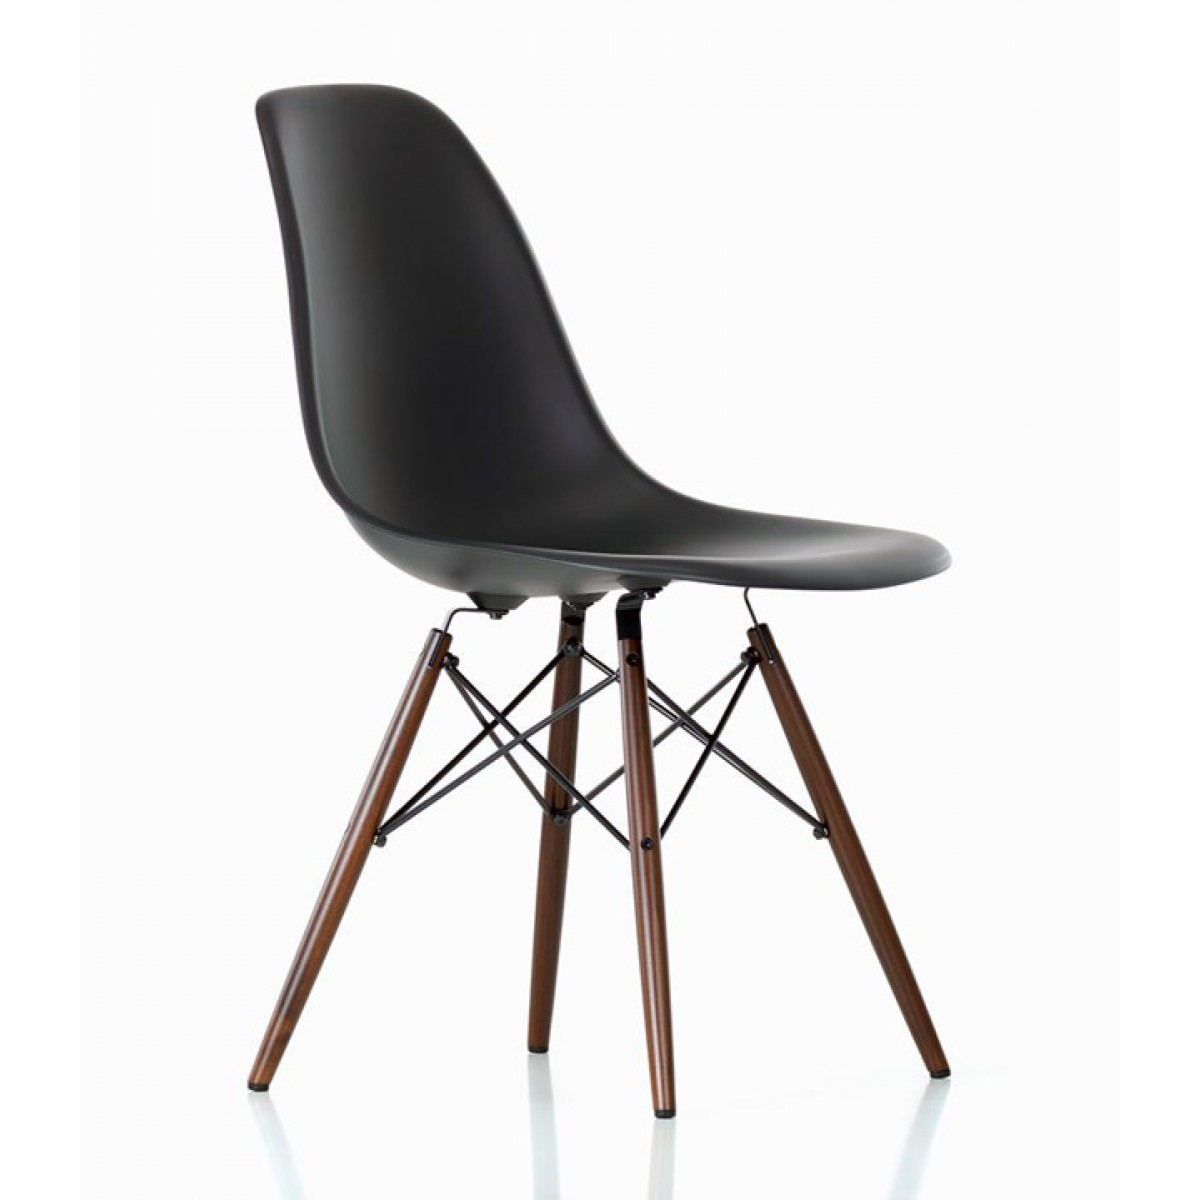 black plastic chair with wooden legs covers in china set of 4 eames style dsw molded dining shell